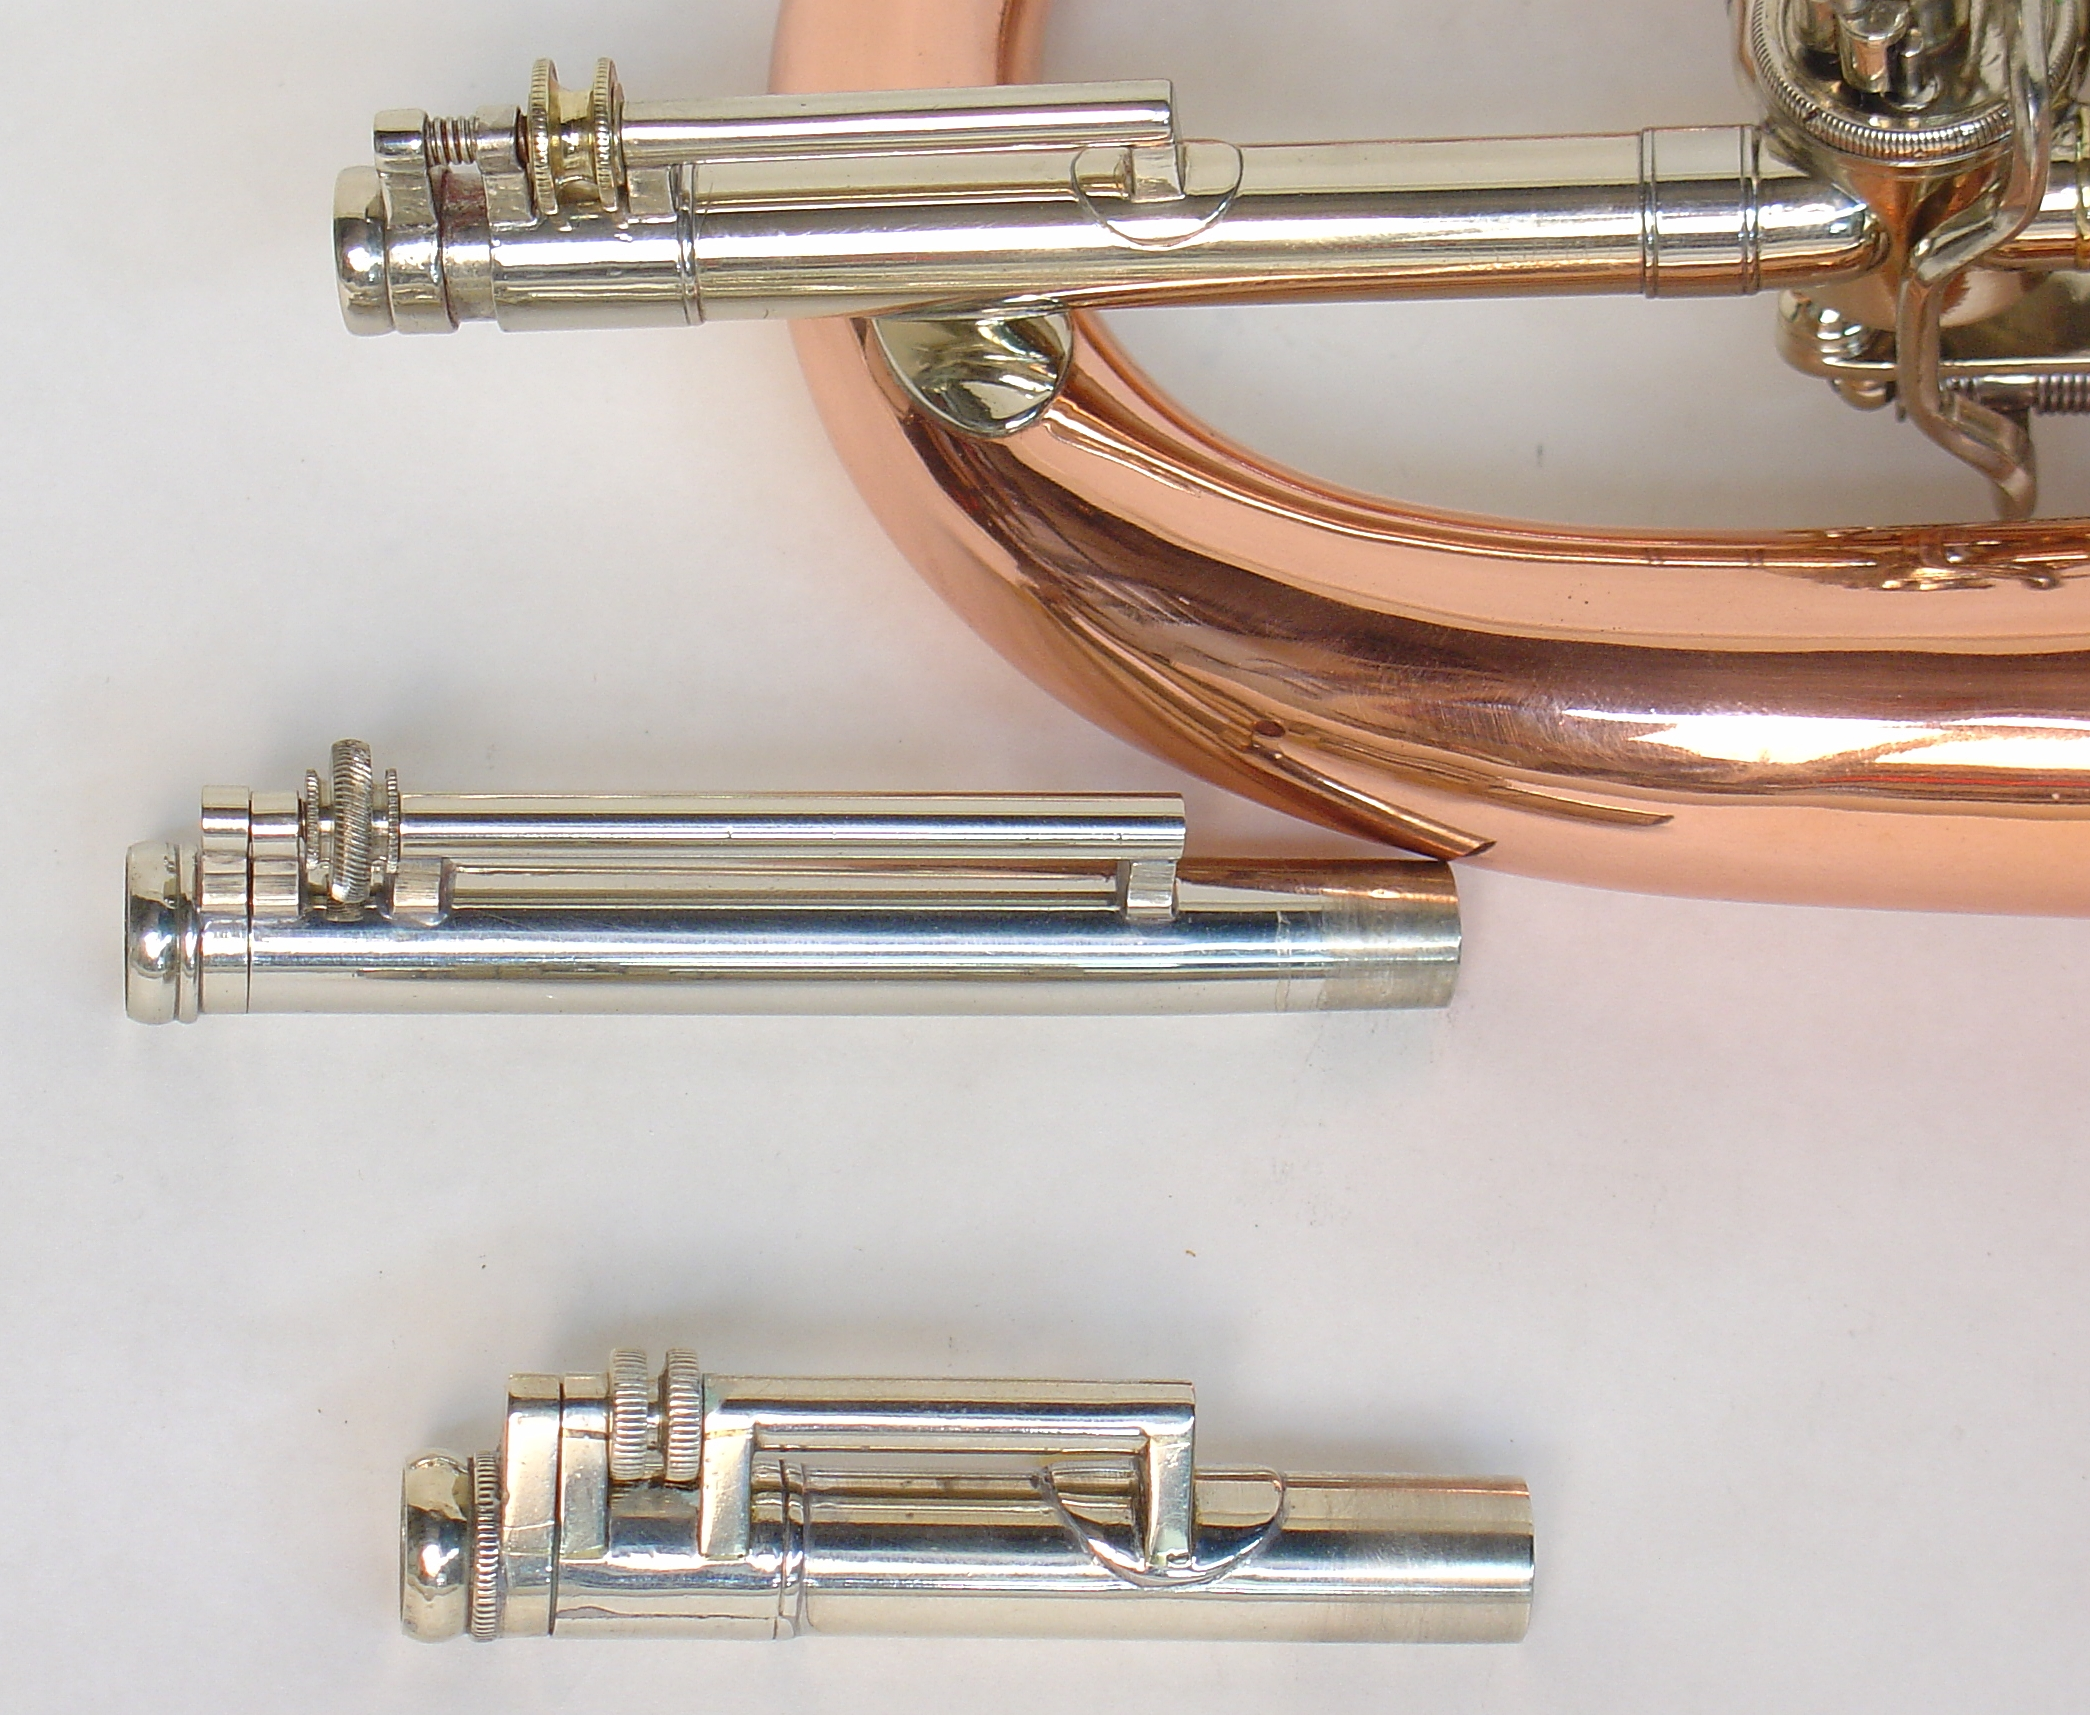 Making Tuning Mouthpipes